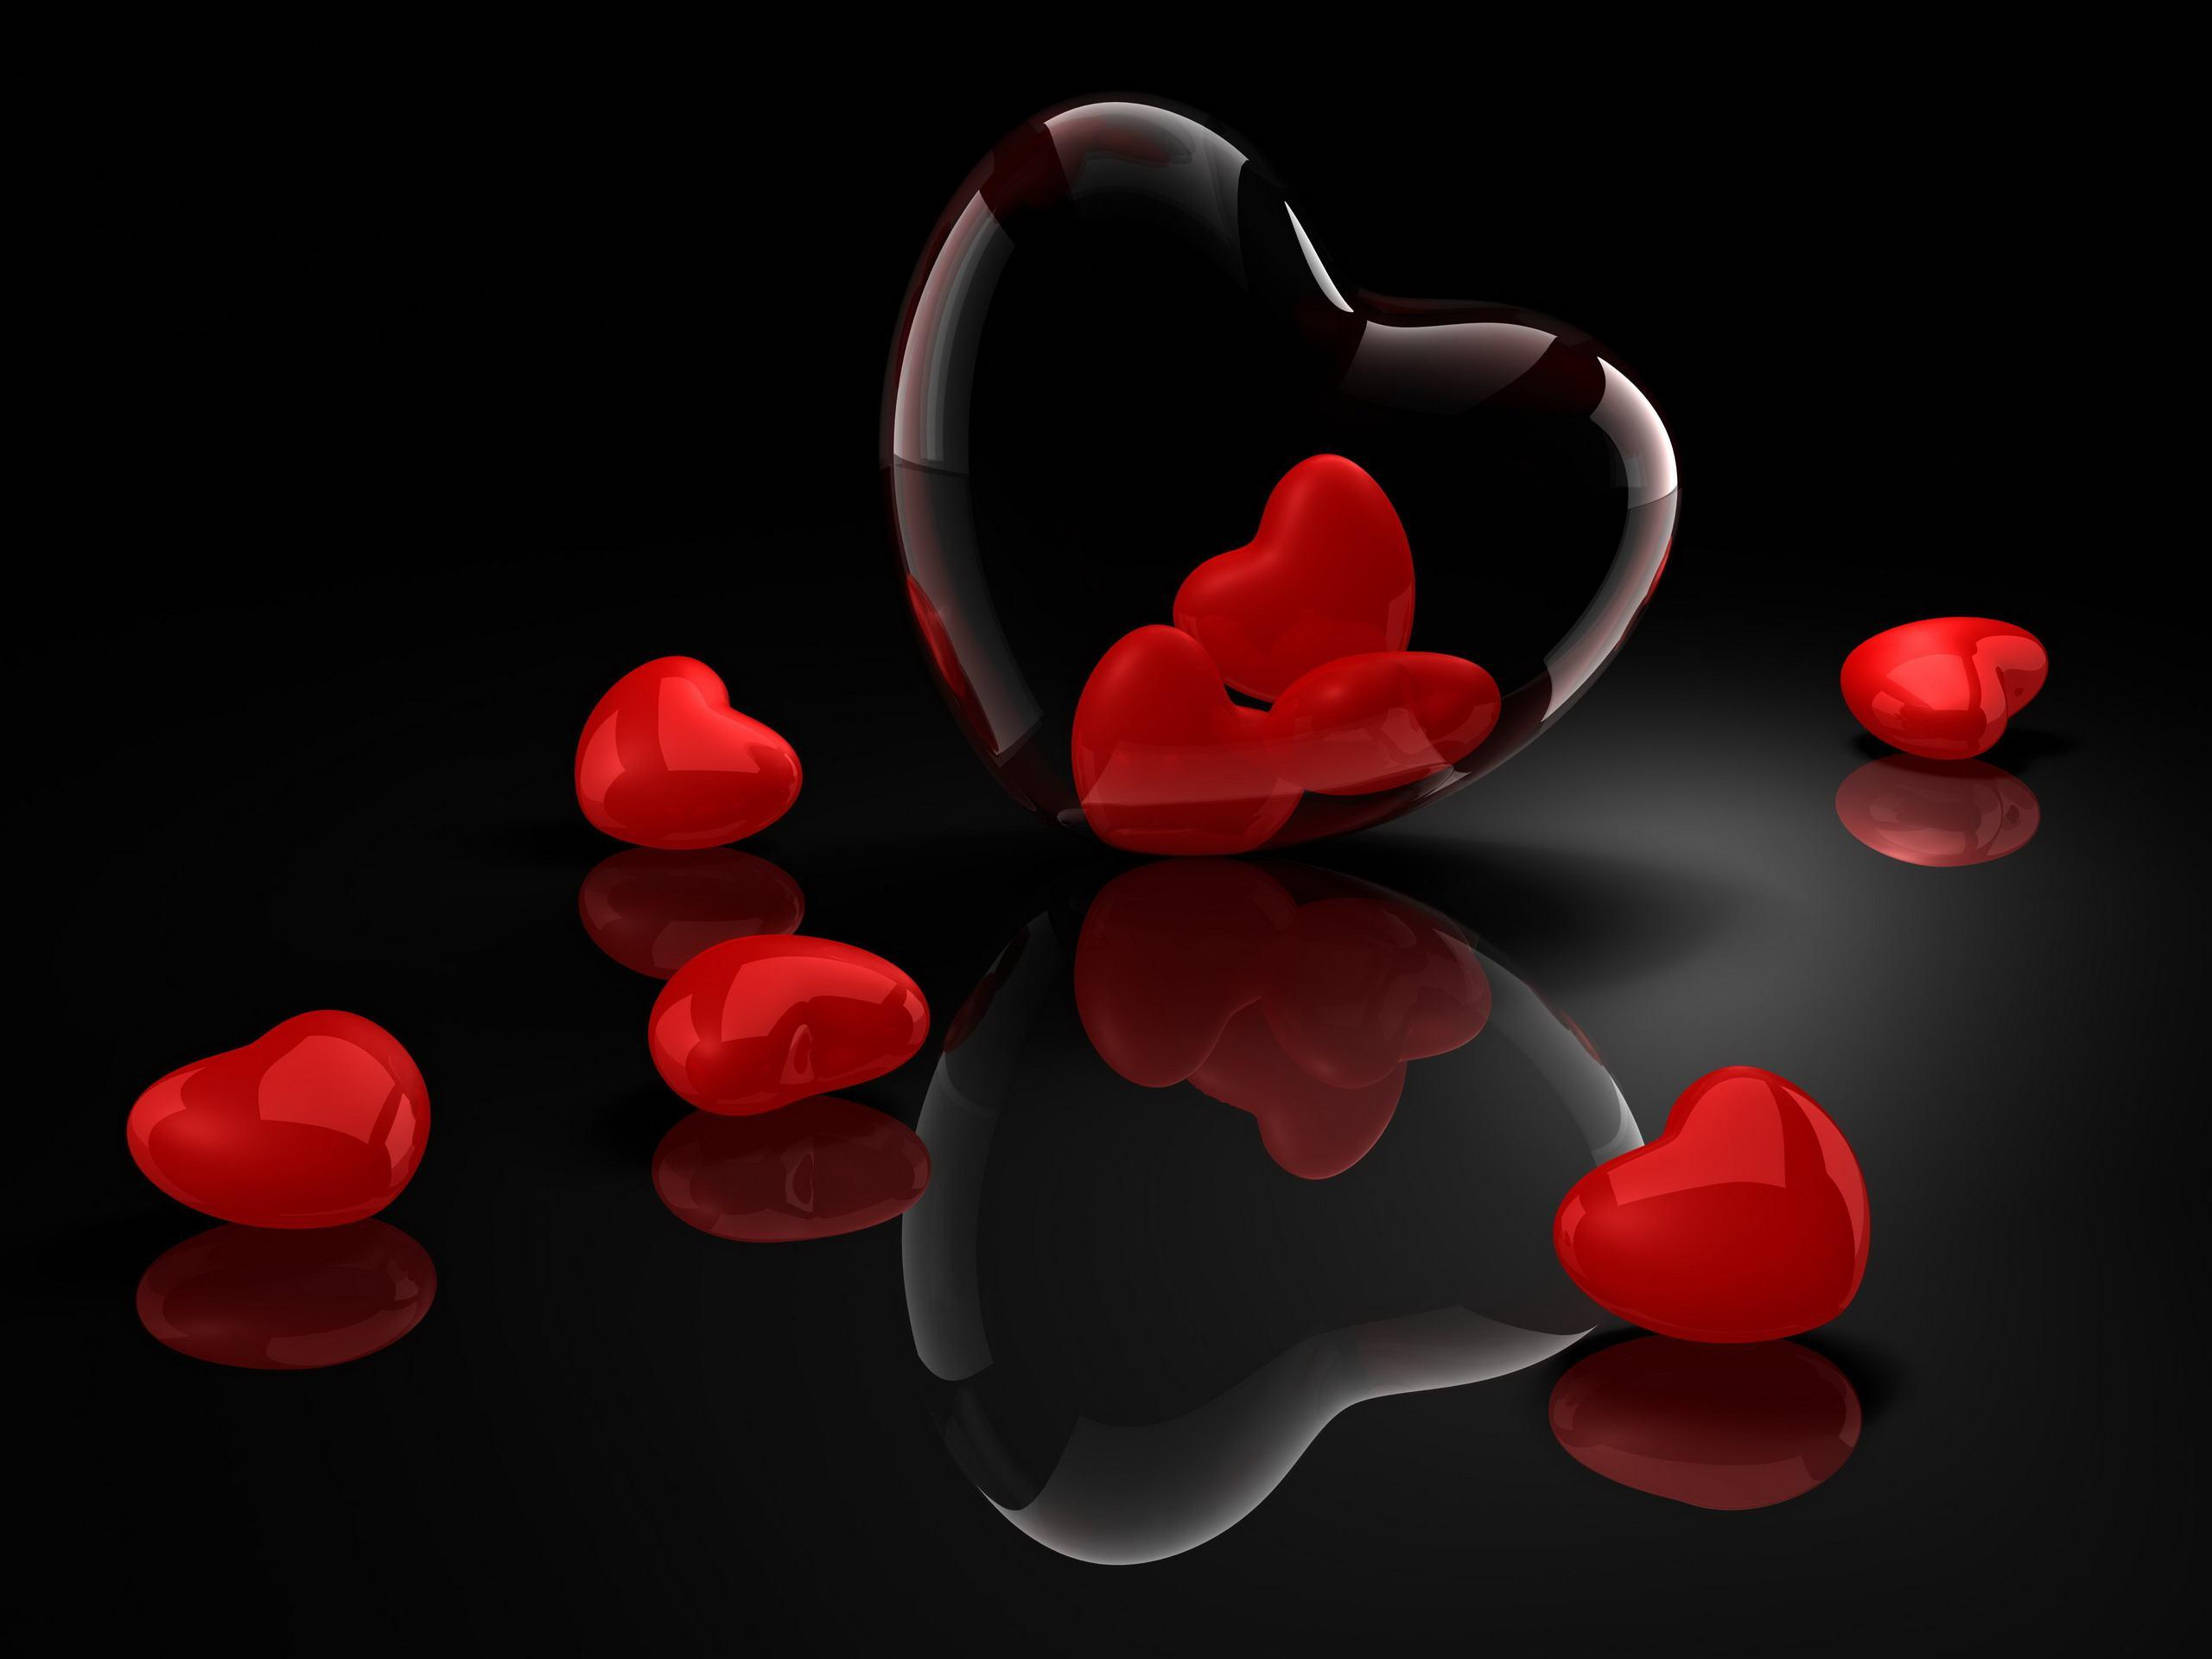 Love Images Hd And 3d : Heart Black Backgrounds - Wallpaper cave